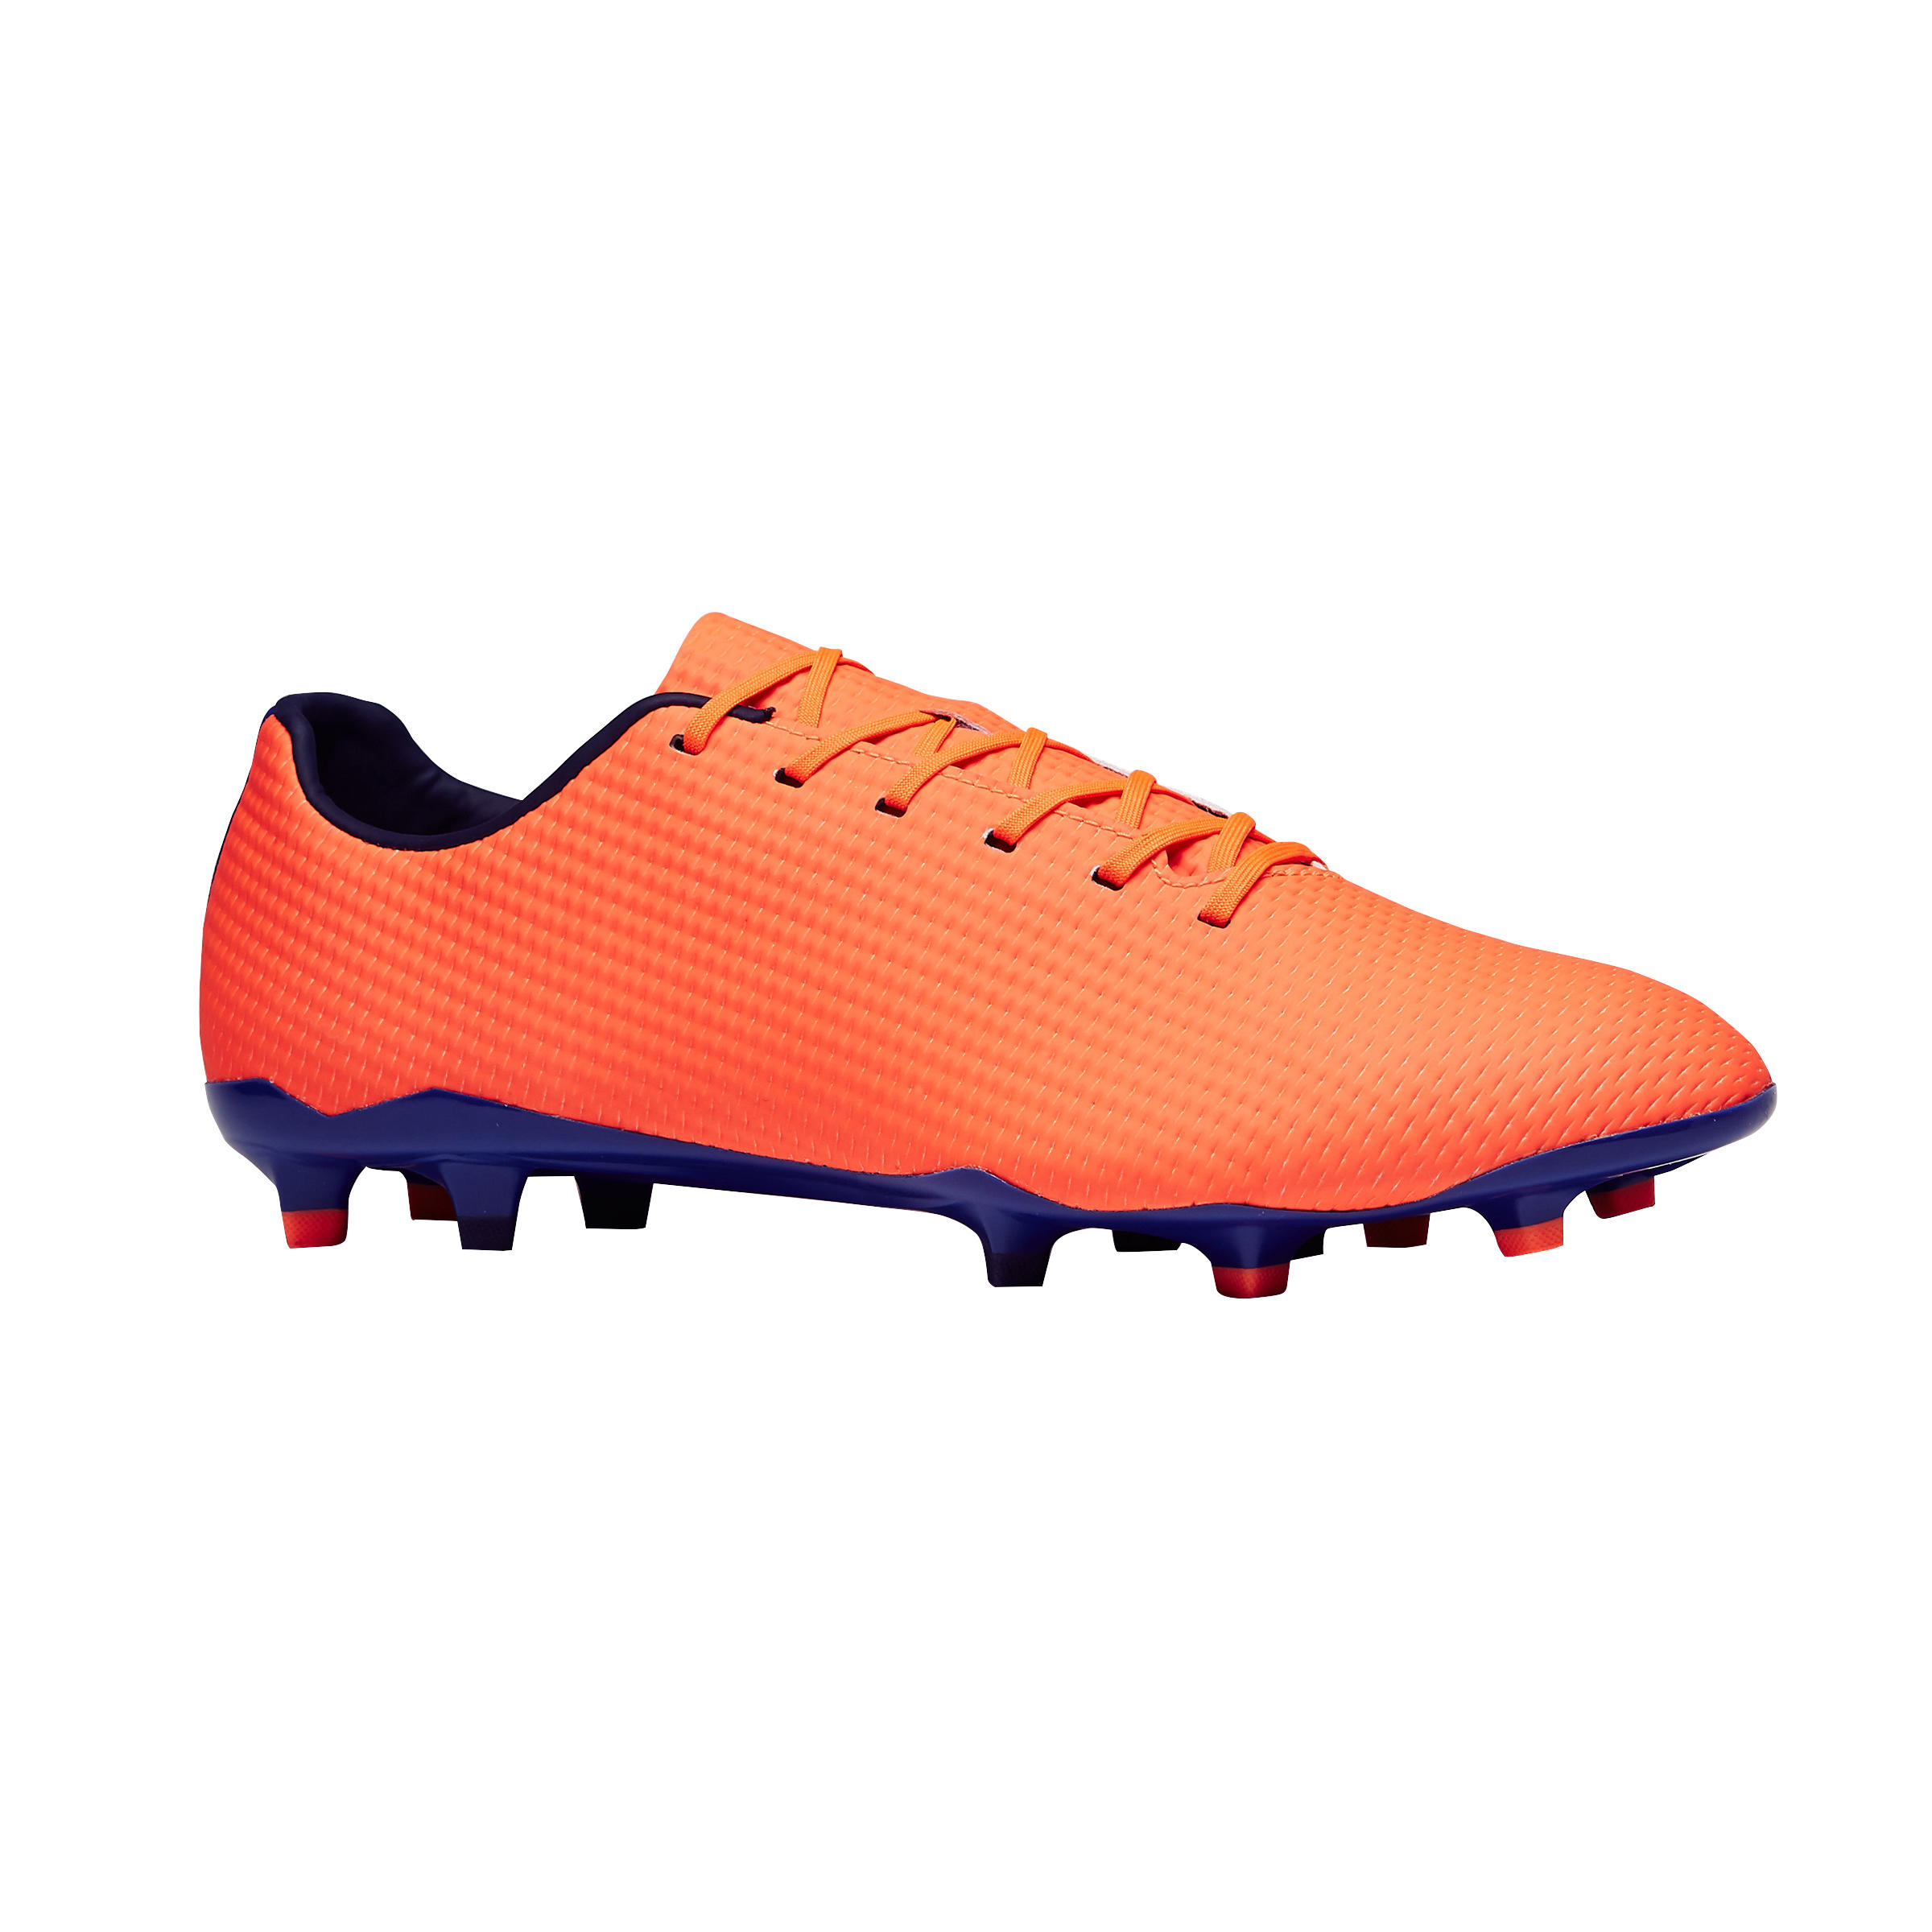 CLR 900 Adult Dry Pitch Football Boots - Orange/Blue